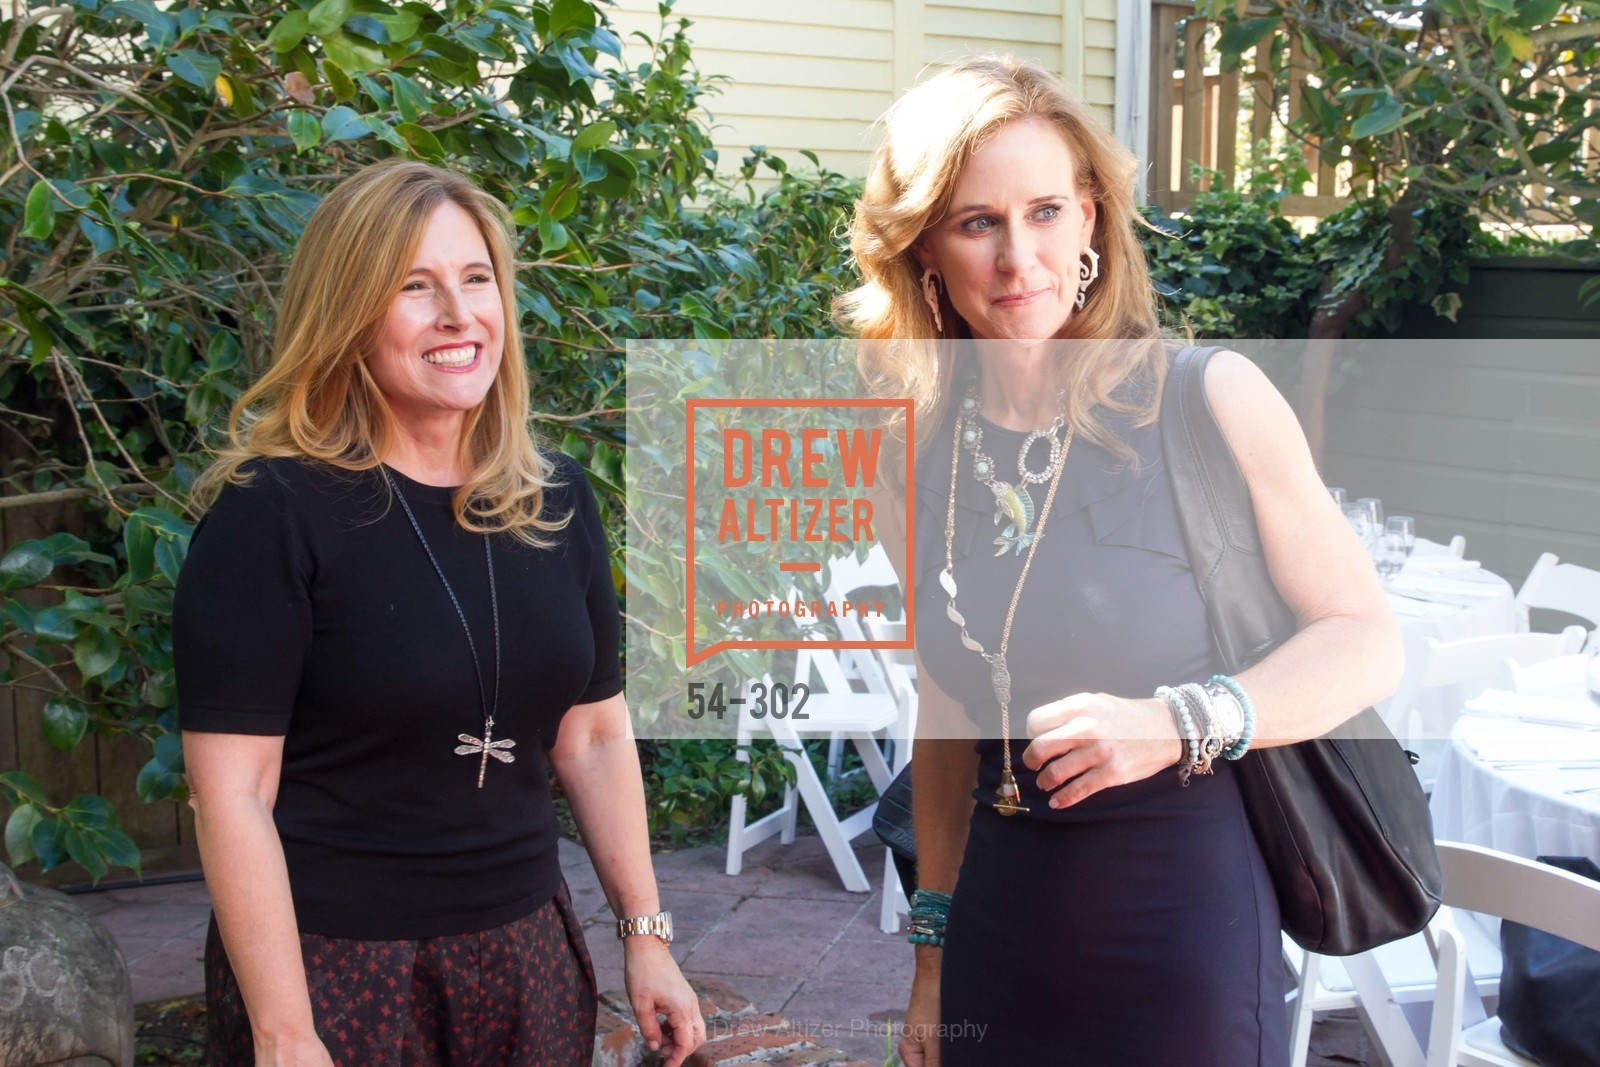 Lisa Rissetto, Sukey Forbes, Rissetto launch honoring Jennifer Raiser & Sukey Forbes, Blanc. 3615 Sacramento SF, September 21st, 2015,Drew Altizer, Drew Altizer Photography, full-service agency, private events, San Francisco photographer, photographer california